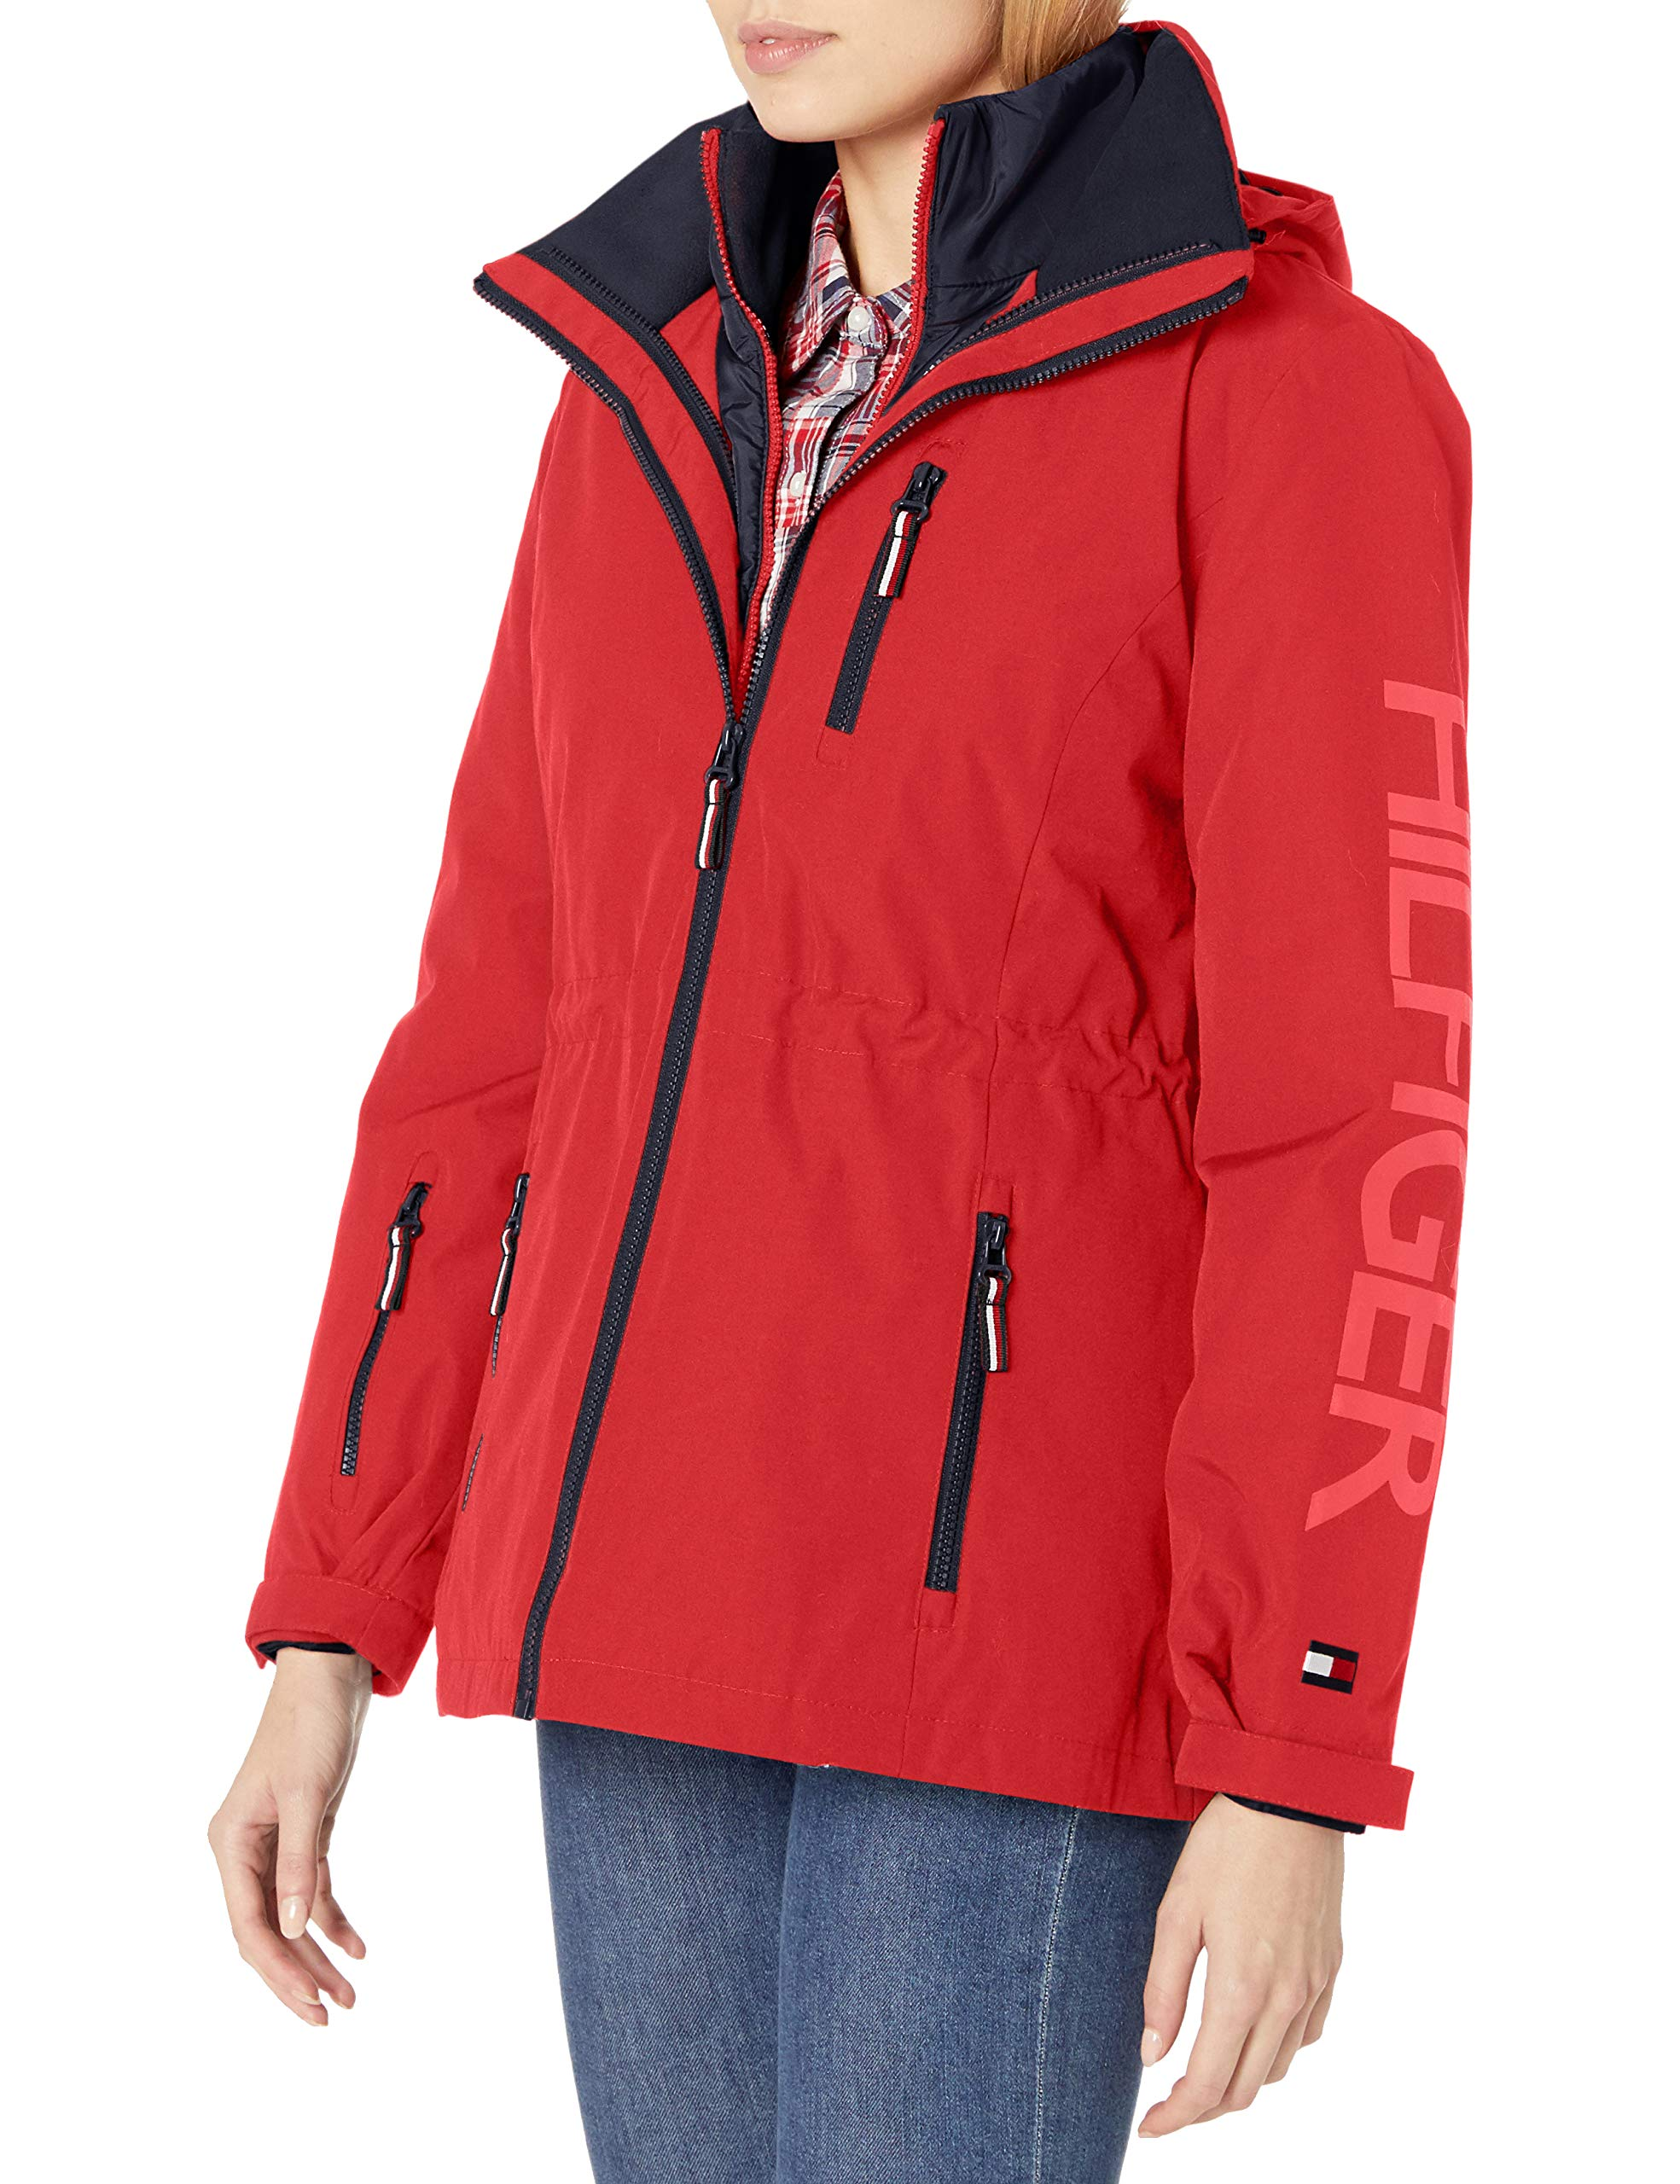 Tommy Hilfiger Women's 3 in 1 Systems Jacket, Fire, M by Tommy Hilfiger